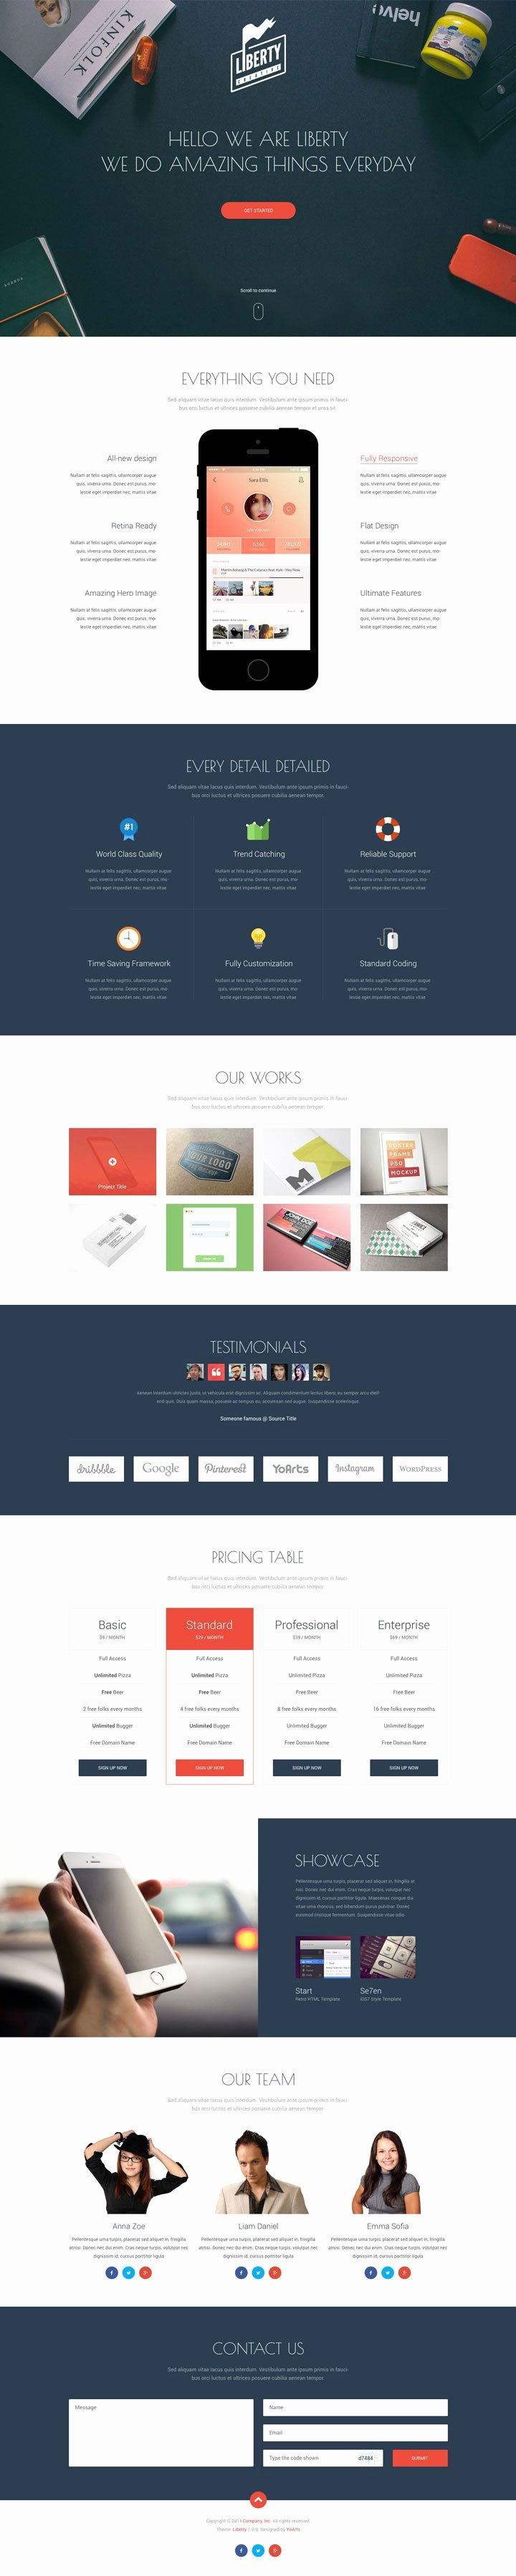 35 Free Single Page Website Template Psd Creativecrunk